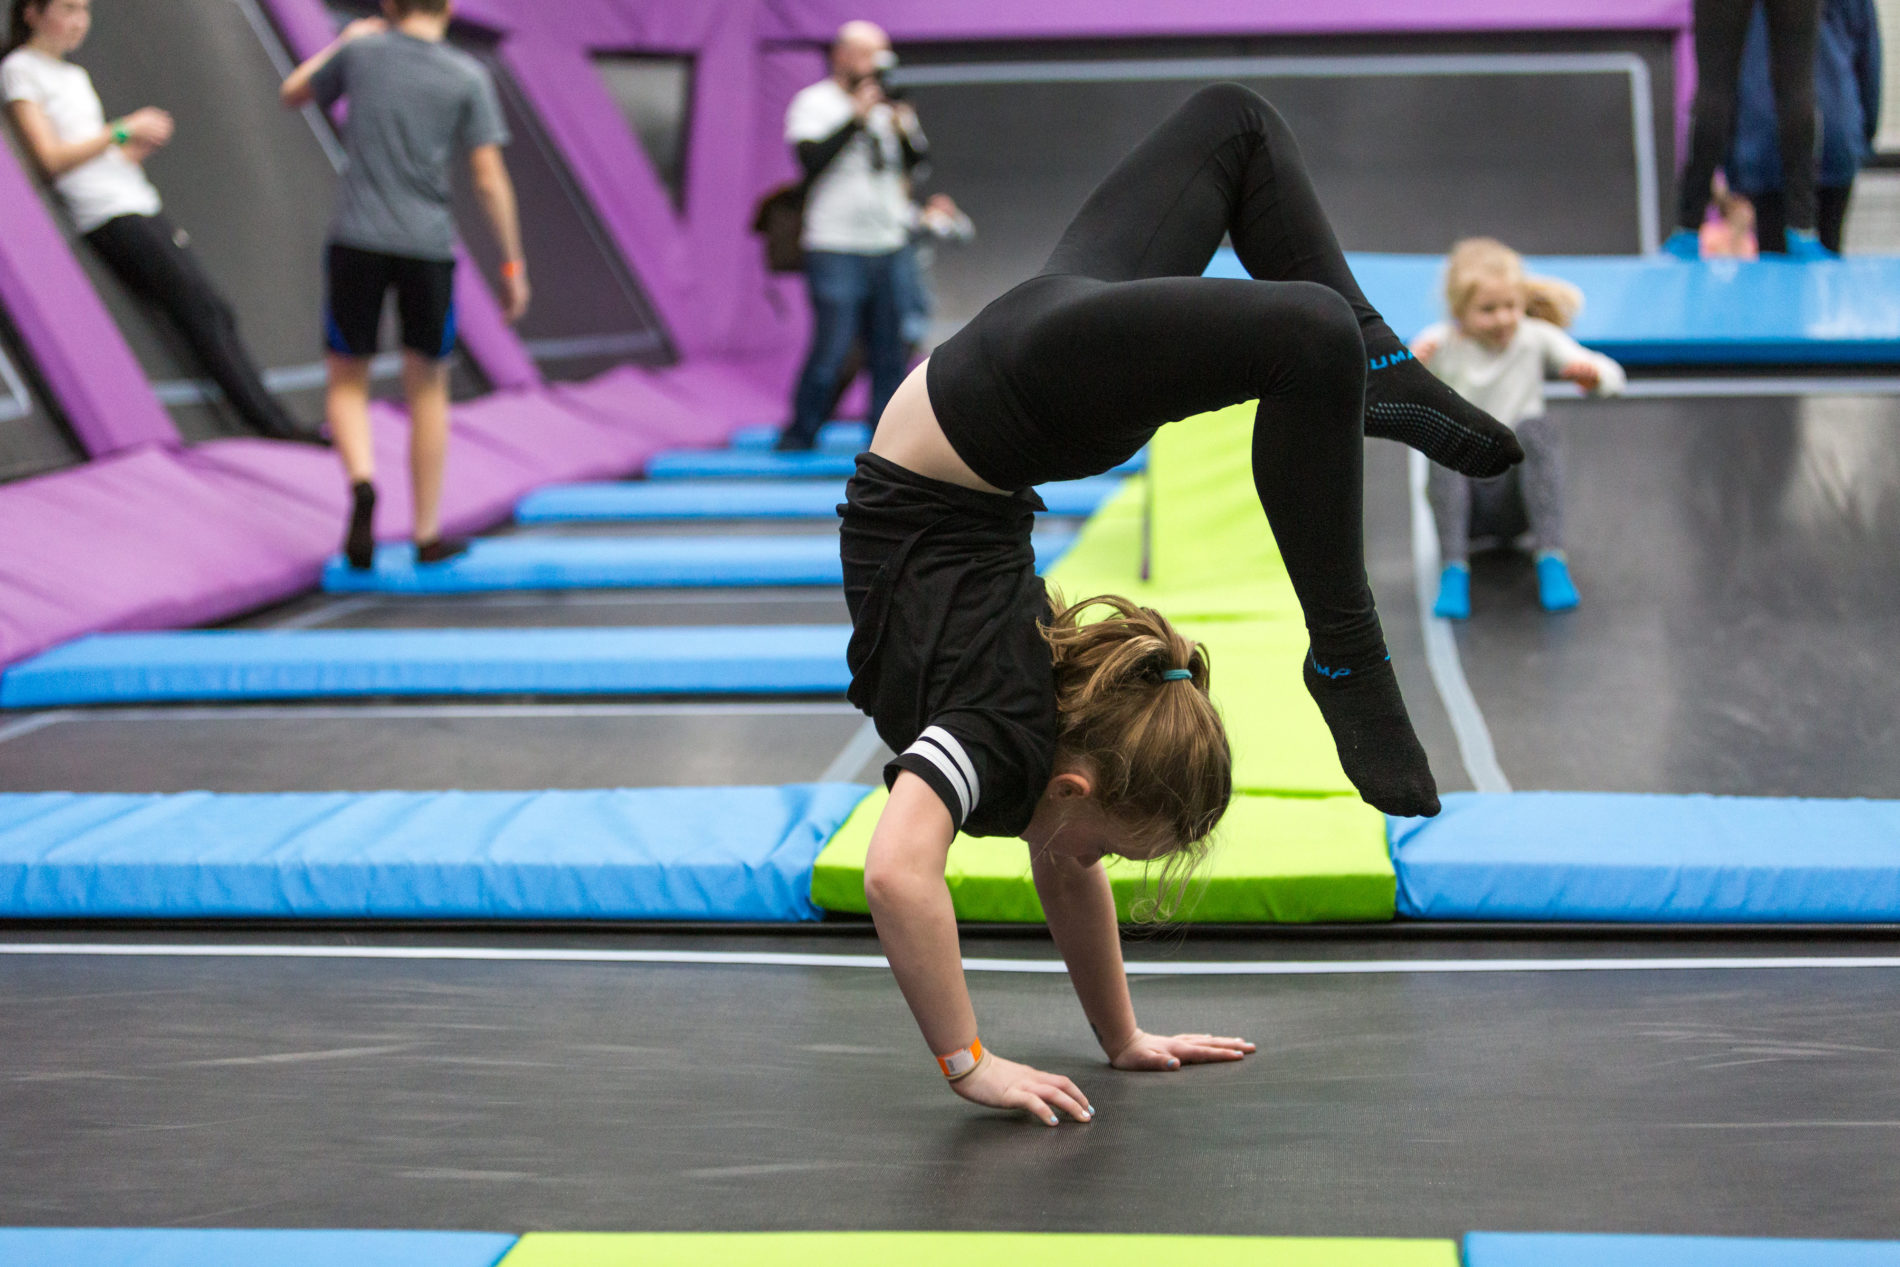 Gymnastics at at Sky High Trampoline Park